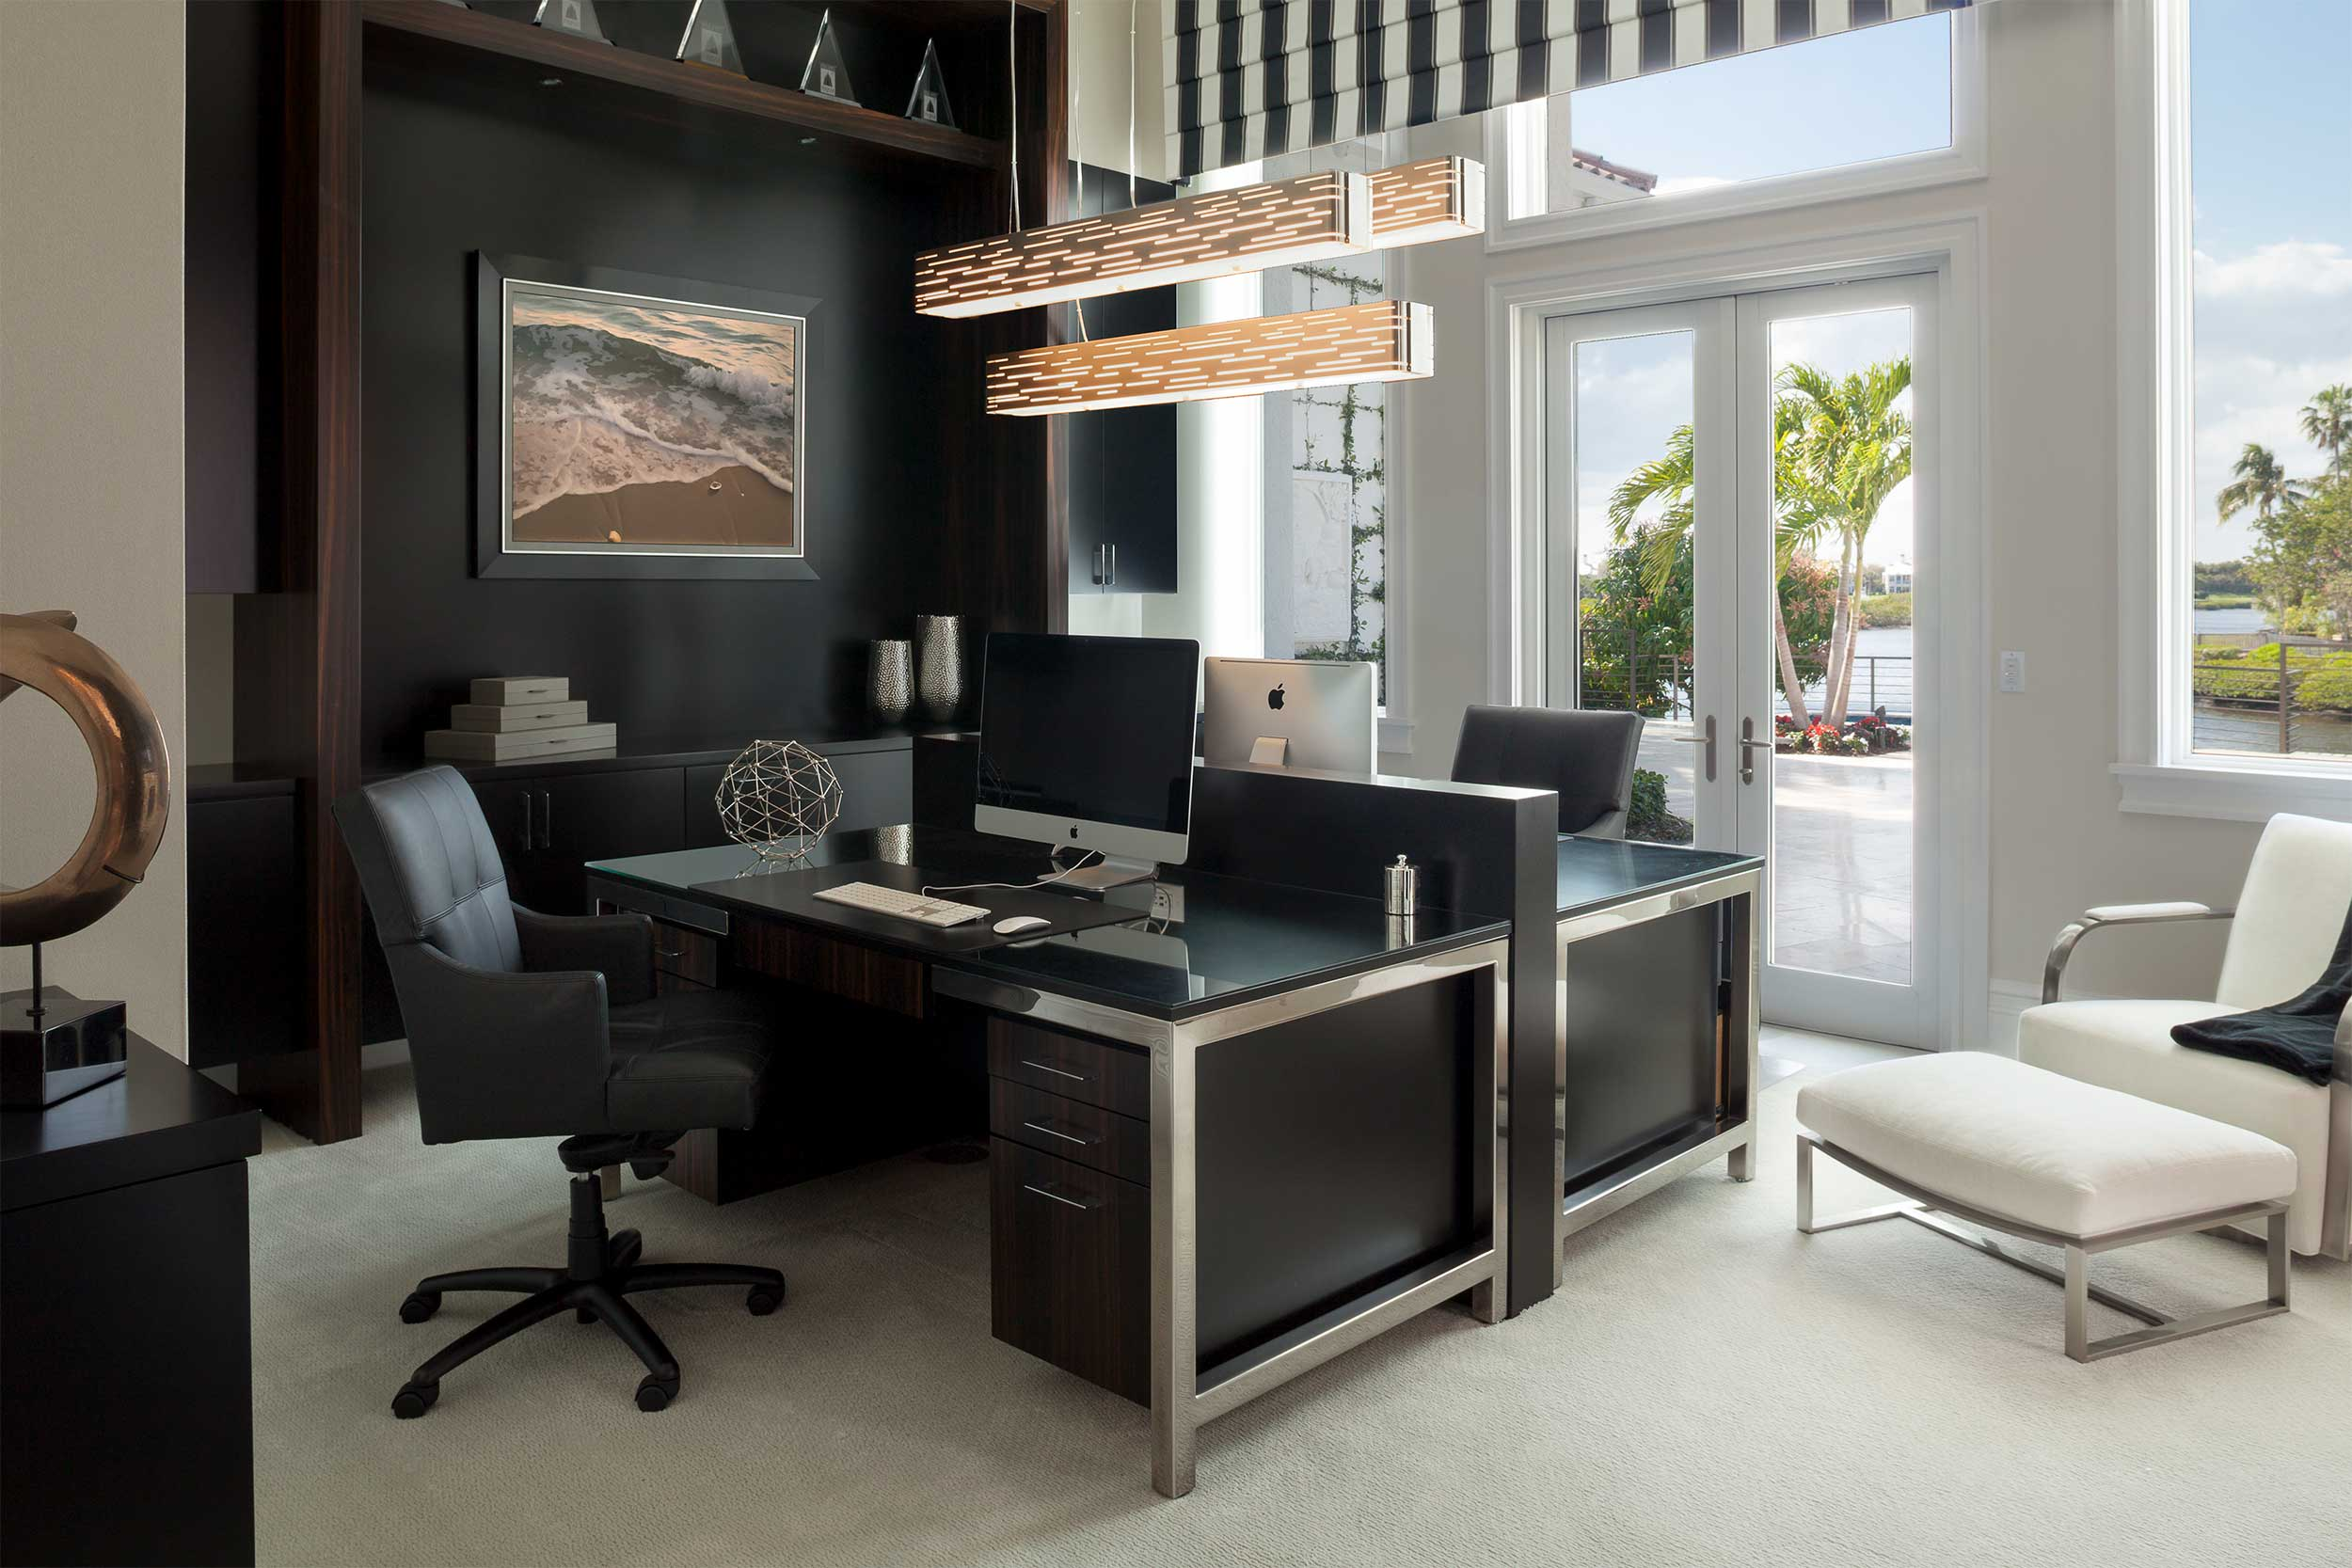 Home office in Residential Interior Design Project in Jupiter, FL